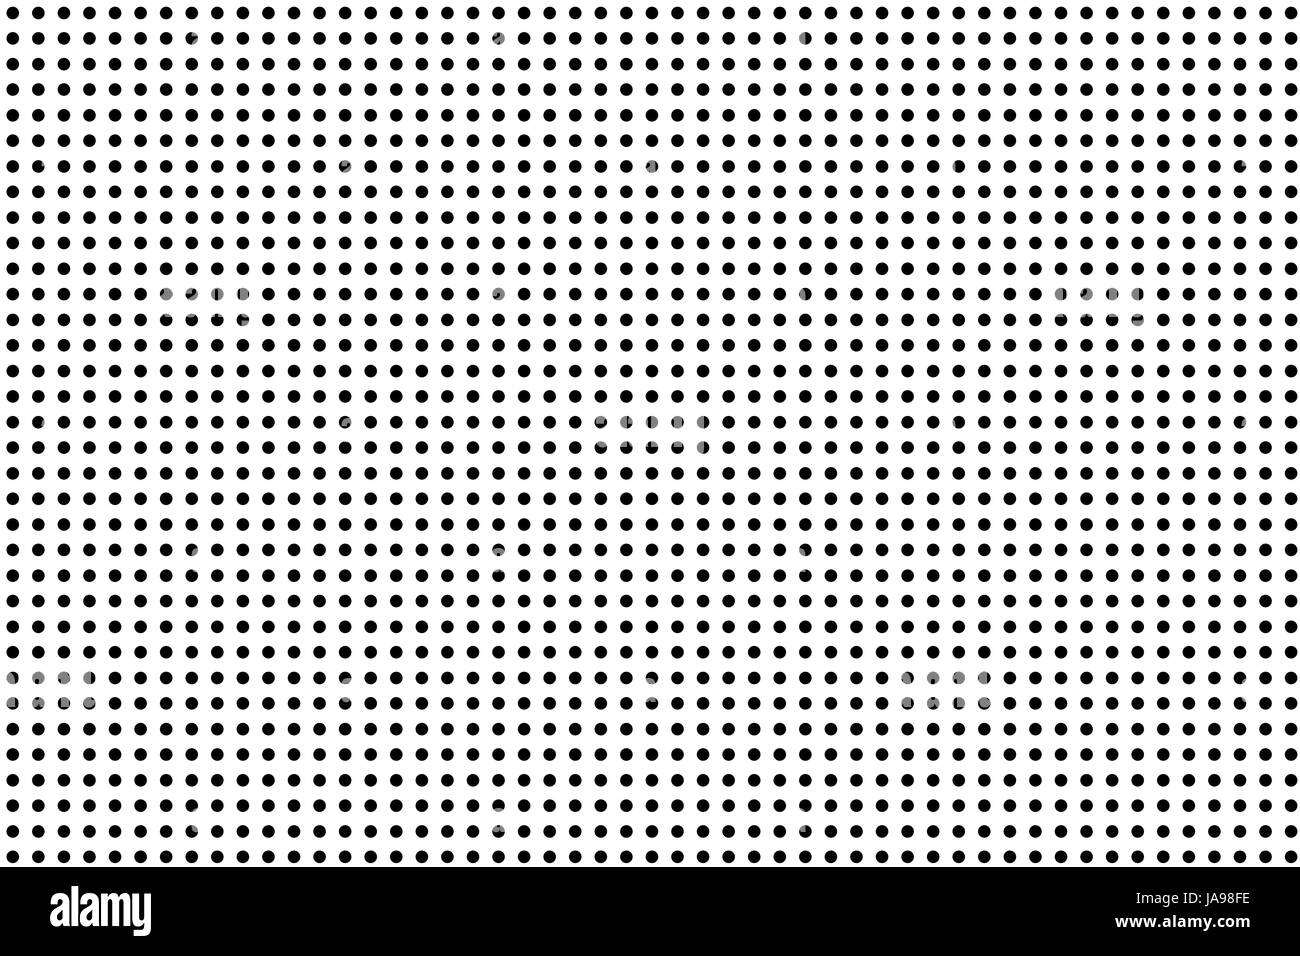 Small black dots on a white surface